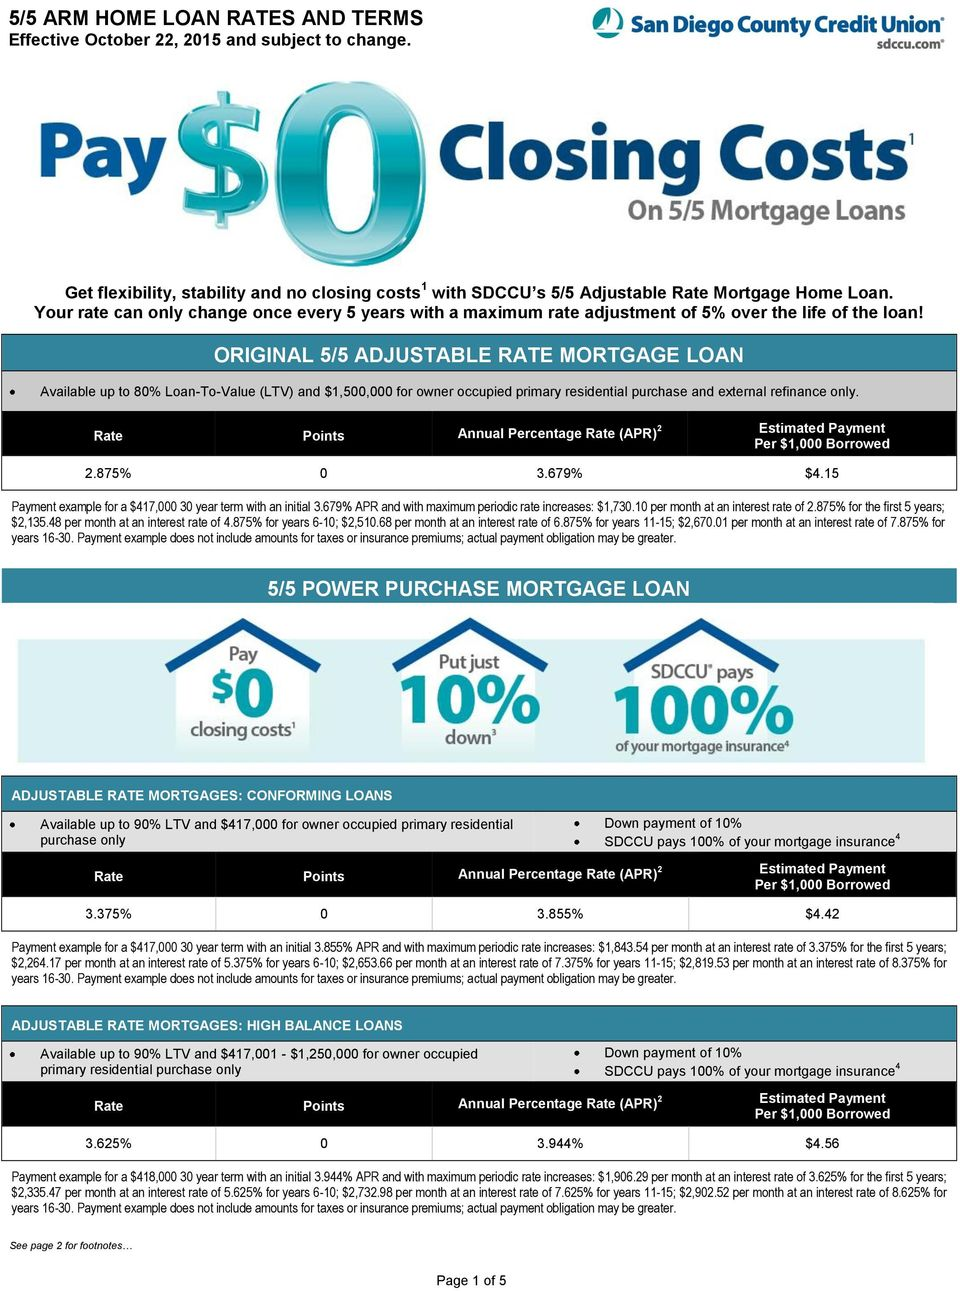 ORIGINAL 5/5 ADJUSTABLE RATE MORTGAGE LOAN Available up to 80% Loan-To-Value (LTV) and $1,500,000 for owner occupied primary residential purchase and external refinance only..875% 0 3.679% $4.